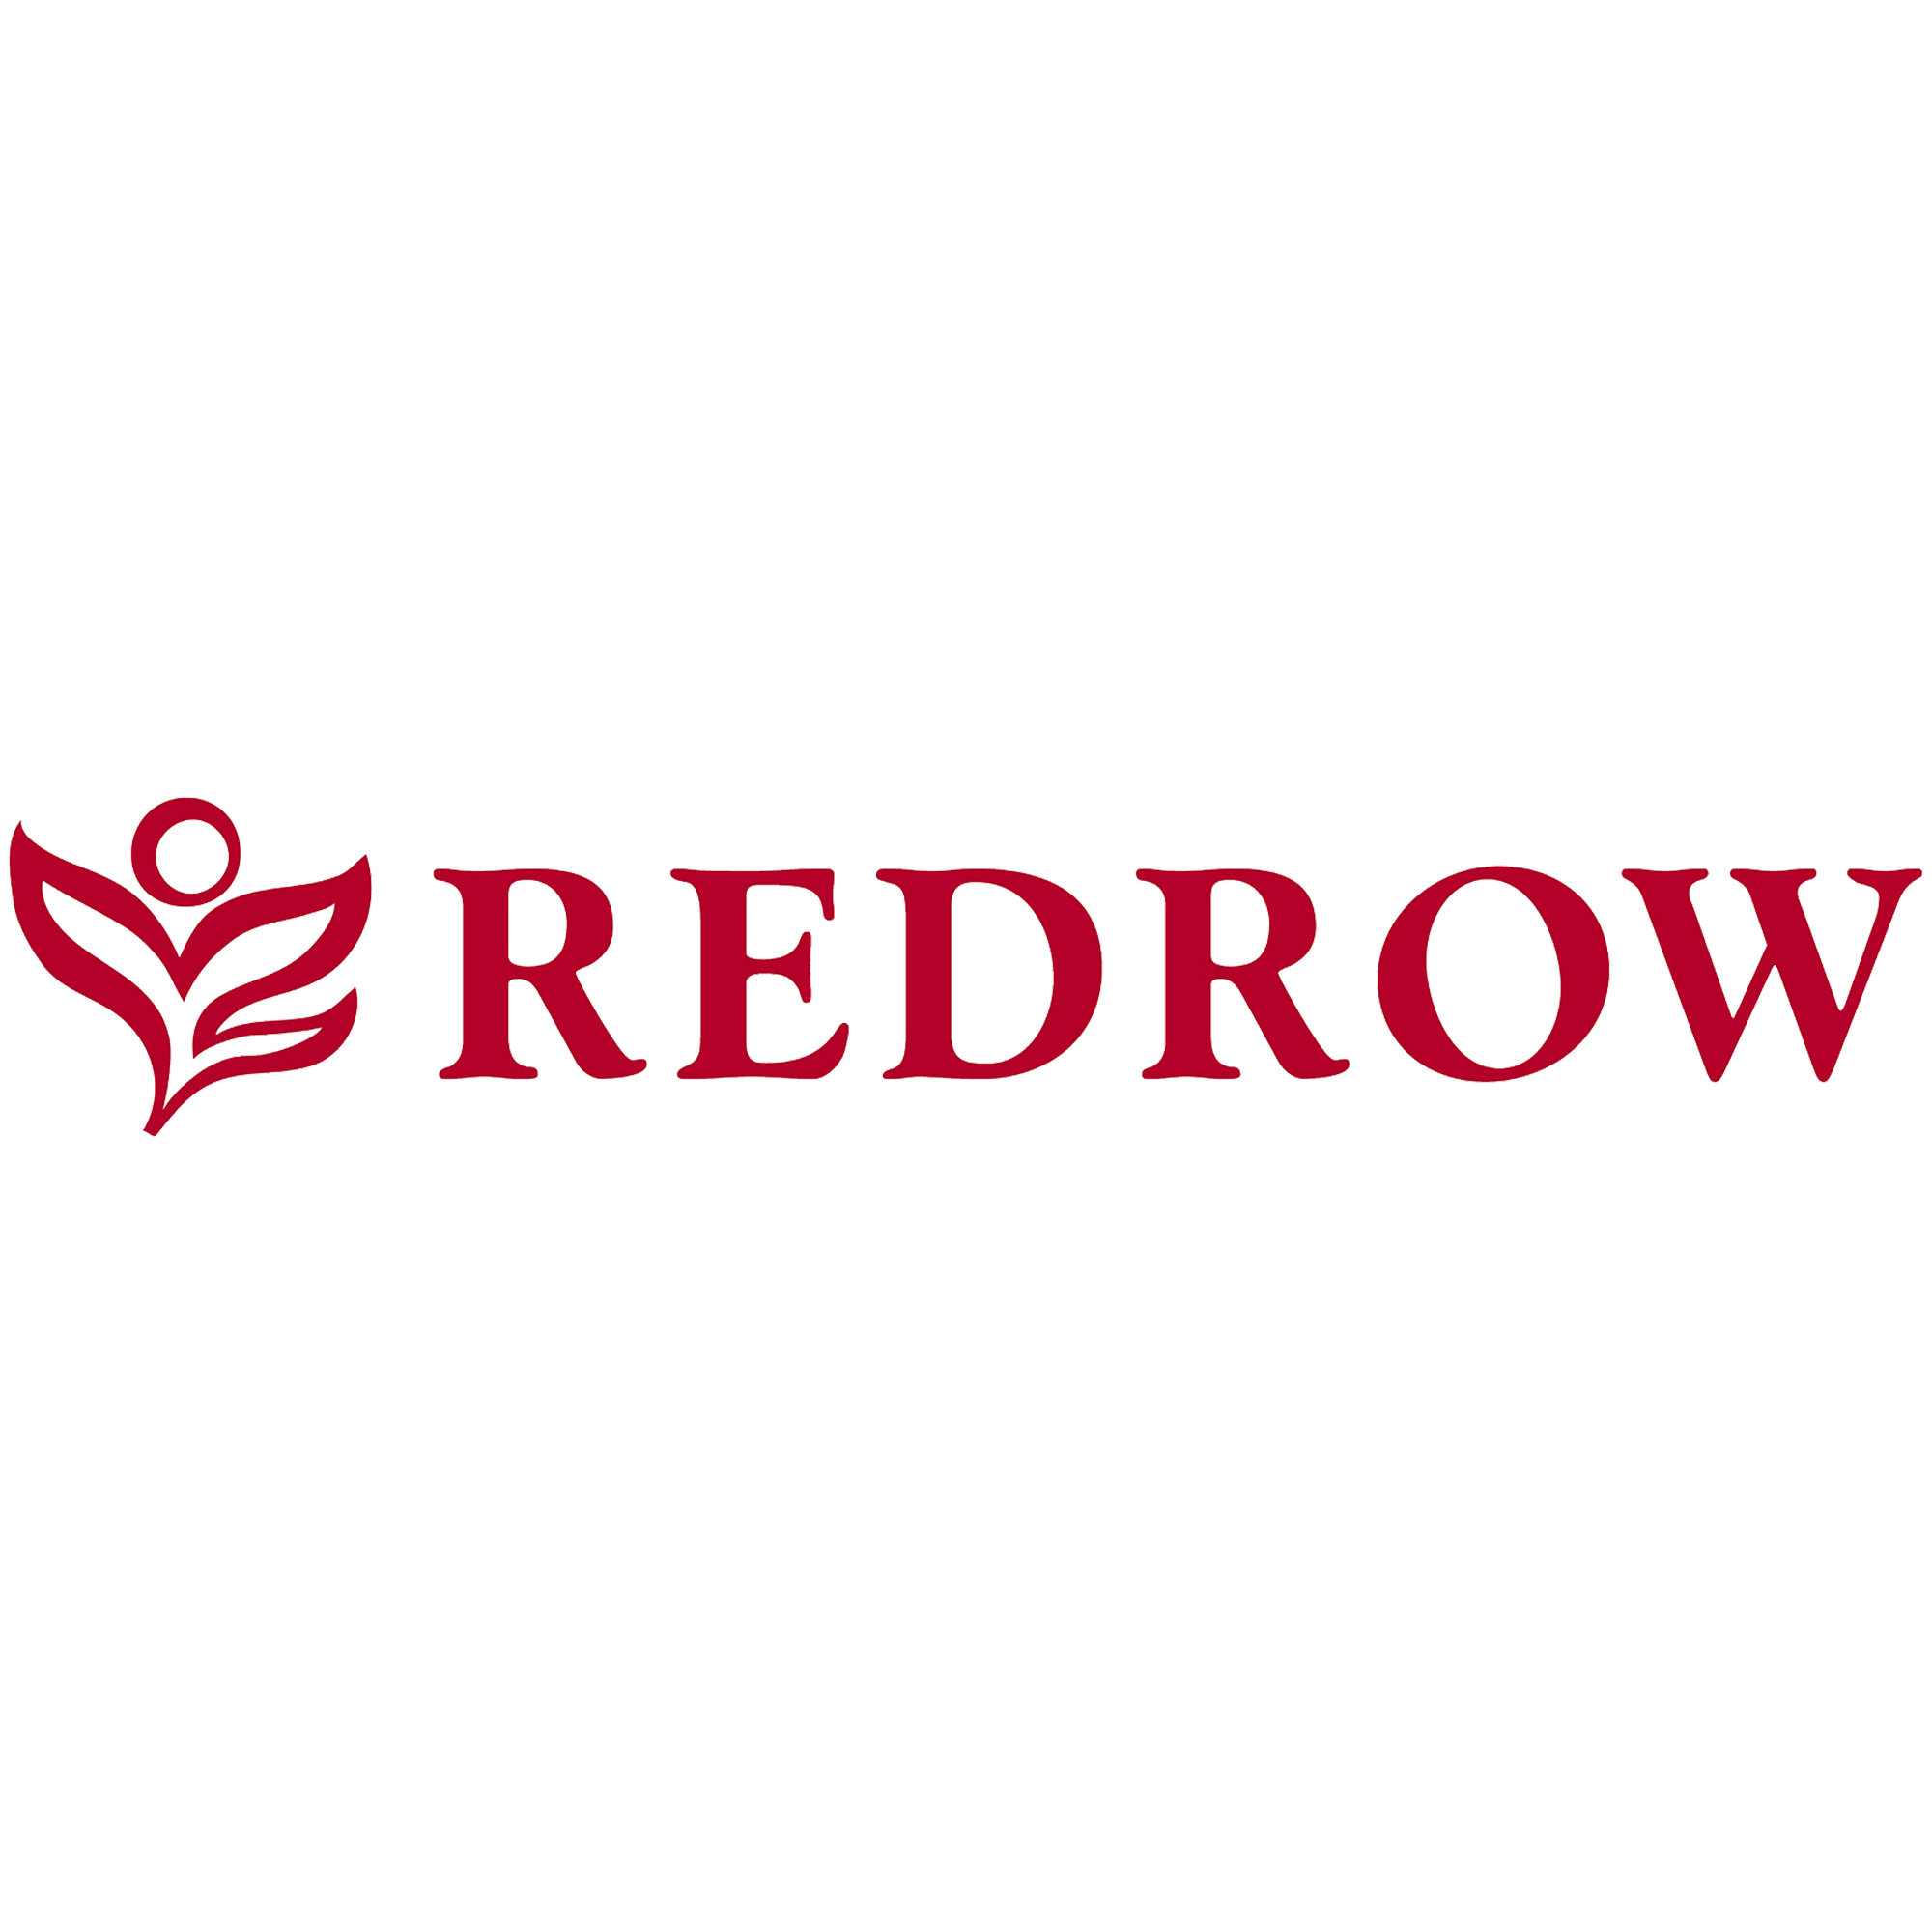 redrow.png